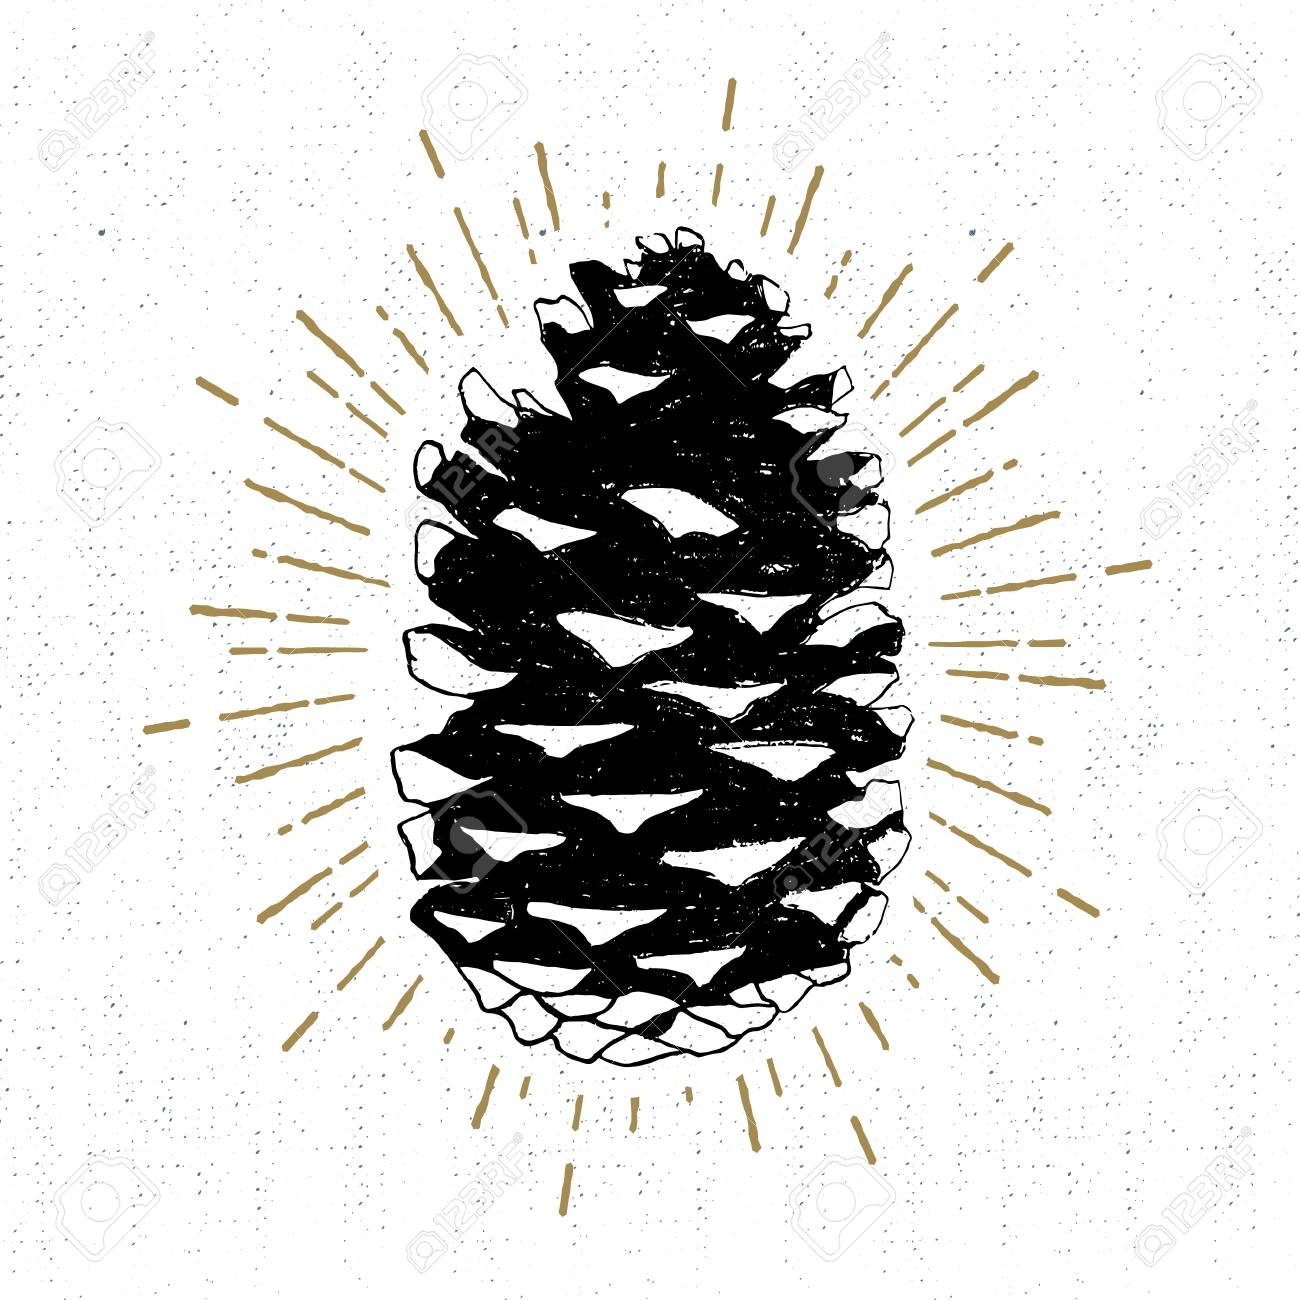 Hand drawn icon with a textured fir cone vector illustration. - 57683604